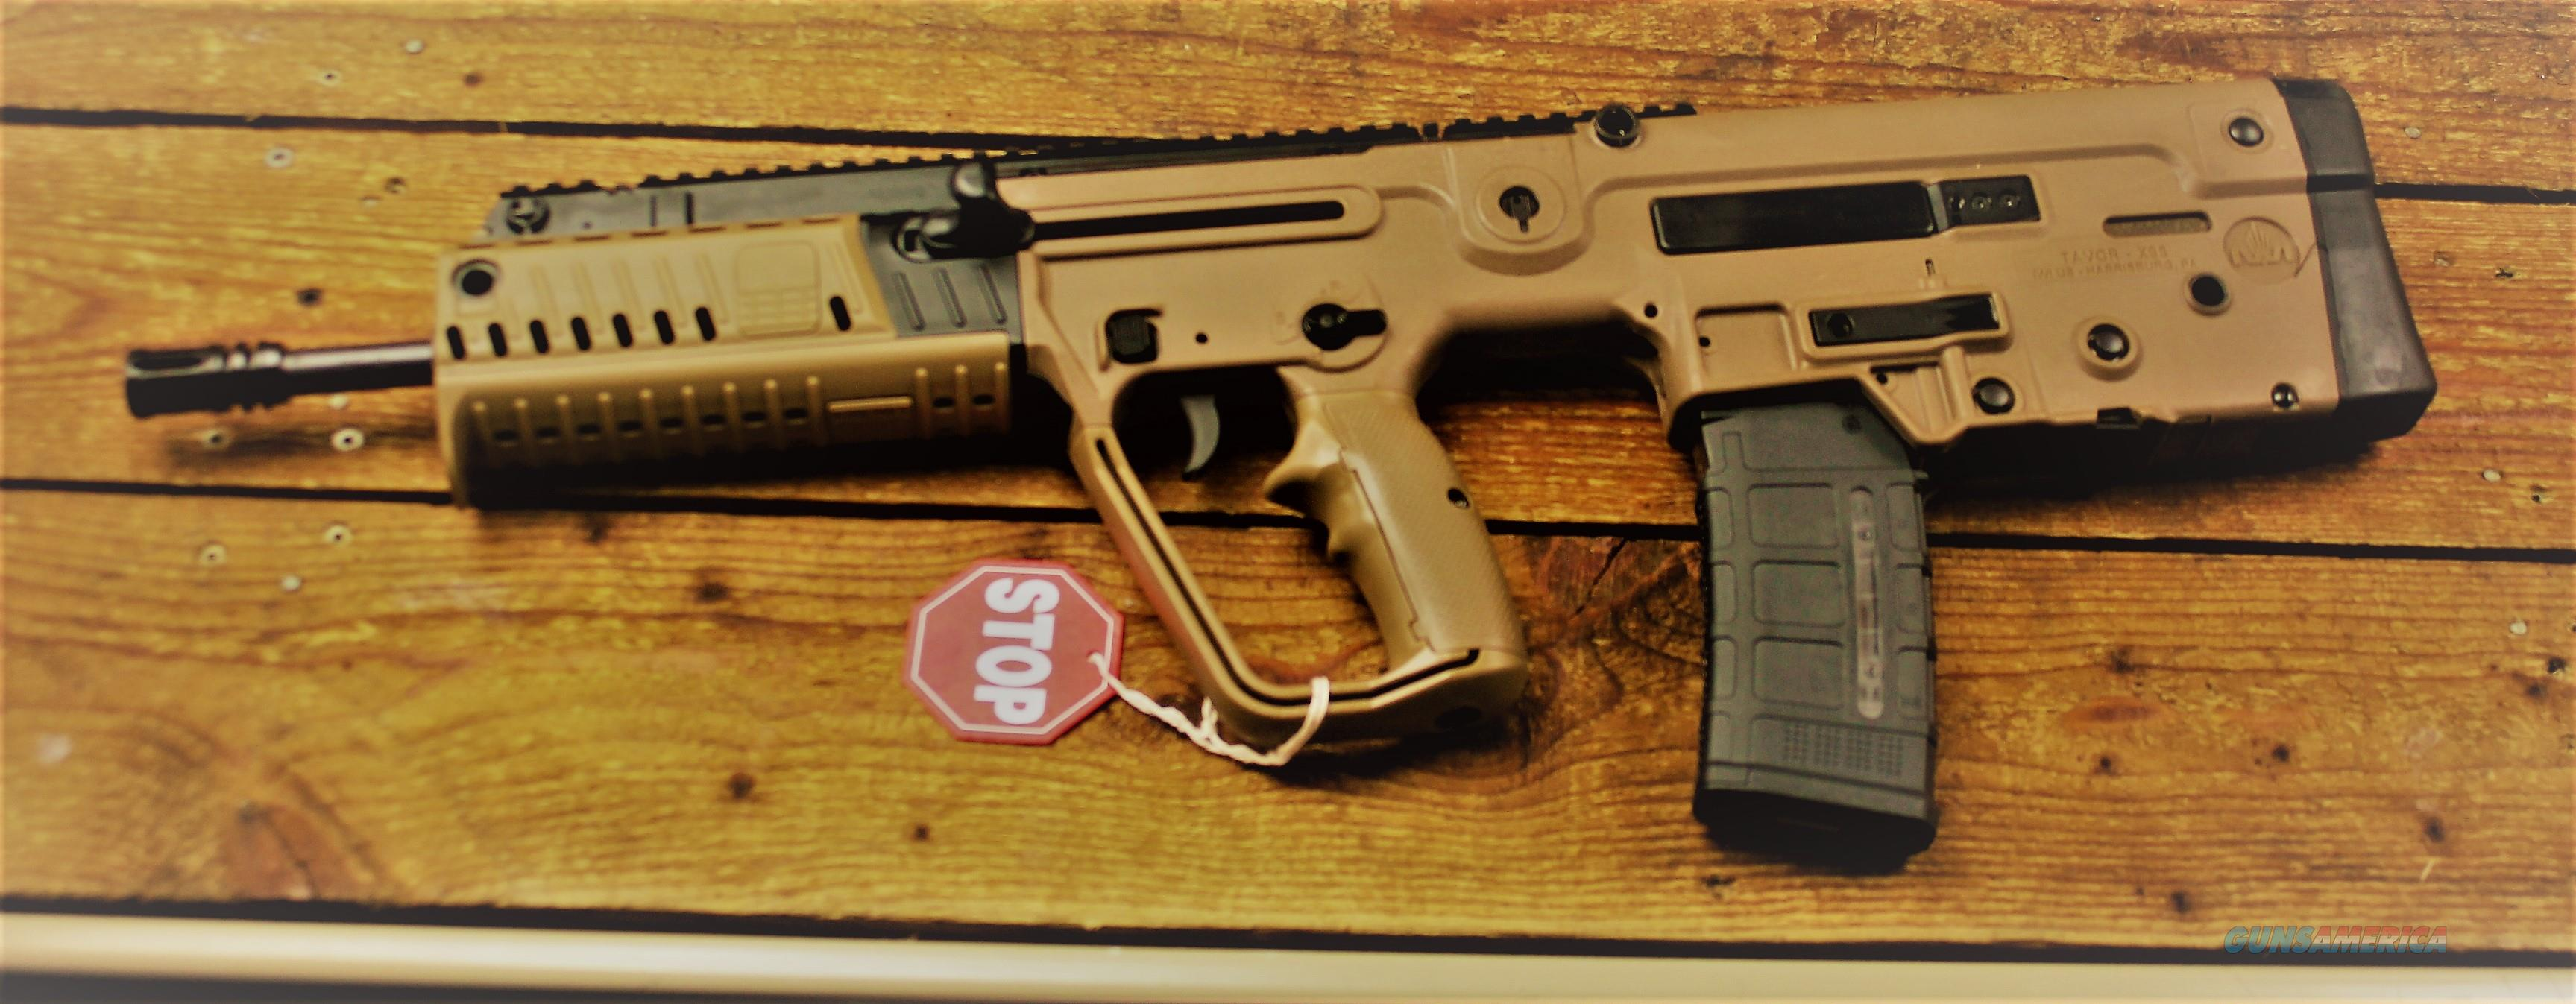 1. EASY PAY $151 IWI US XFD16 Tavor TACTICAL  X95 bullpup 223 Remington/5.56 NATO Polymer FDE  Flat Dark Earth  Guns > Rifles > IWI Rifles